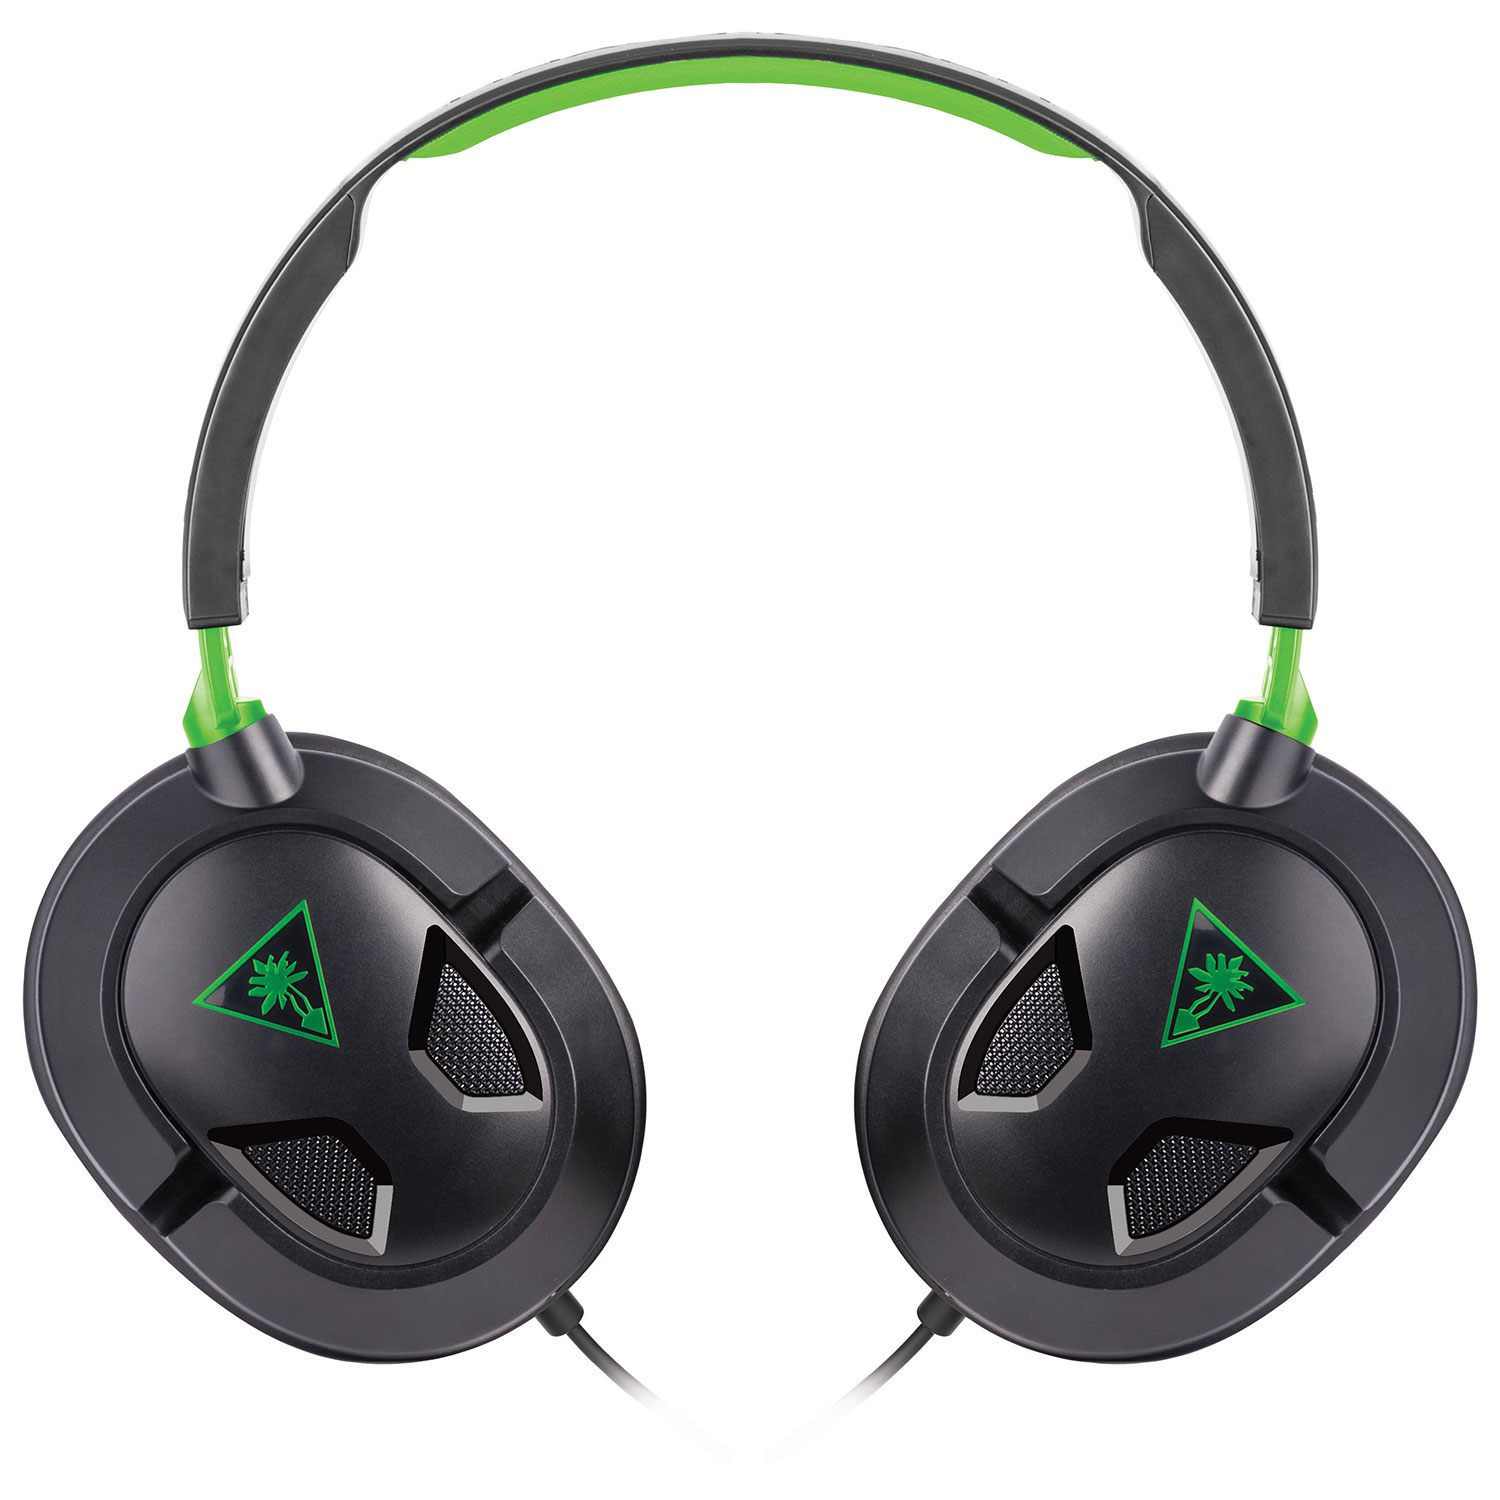 10393403_2 turtle beach ear force recon 50x gaming headset for xbox one Audio Jack Wiring Diagram at mifinder.co